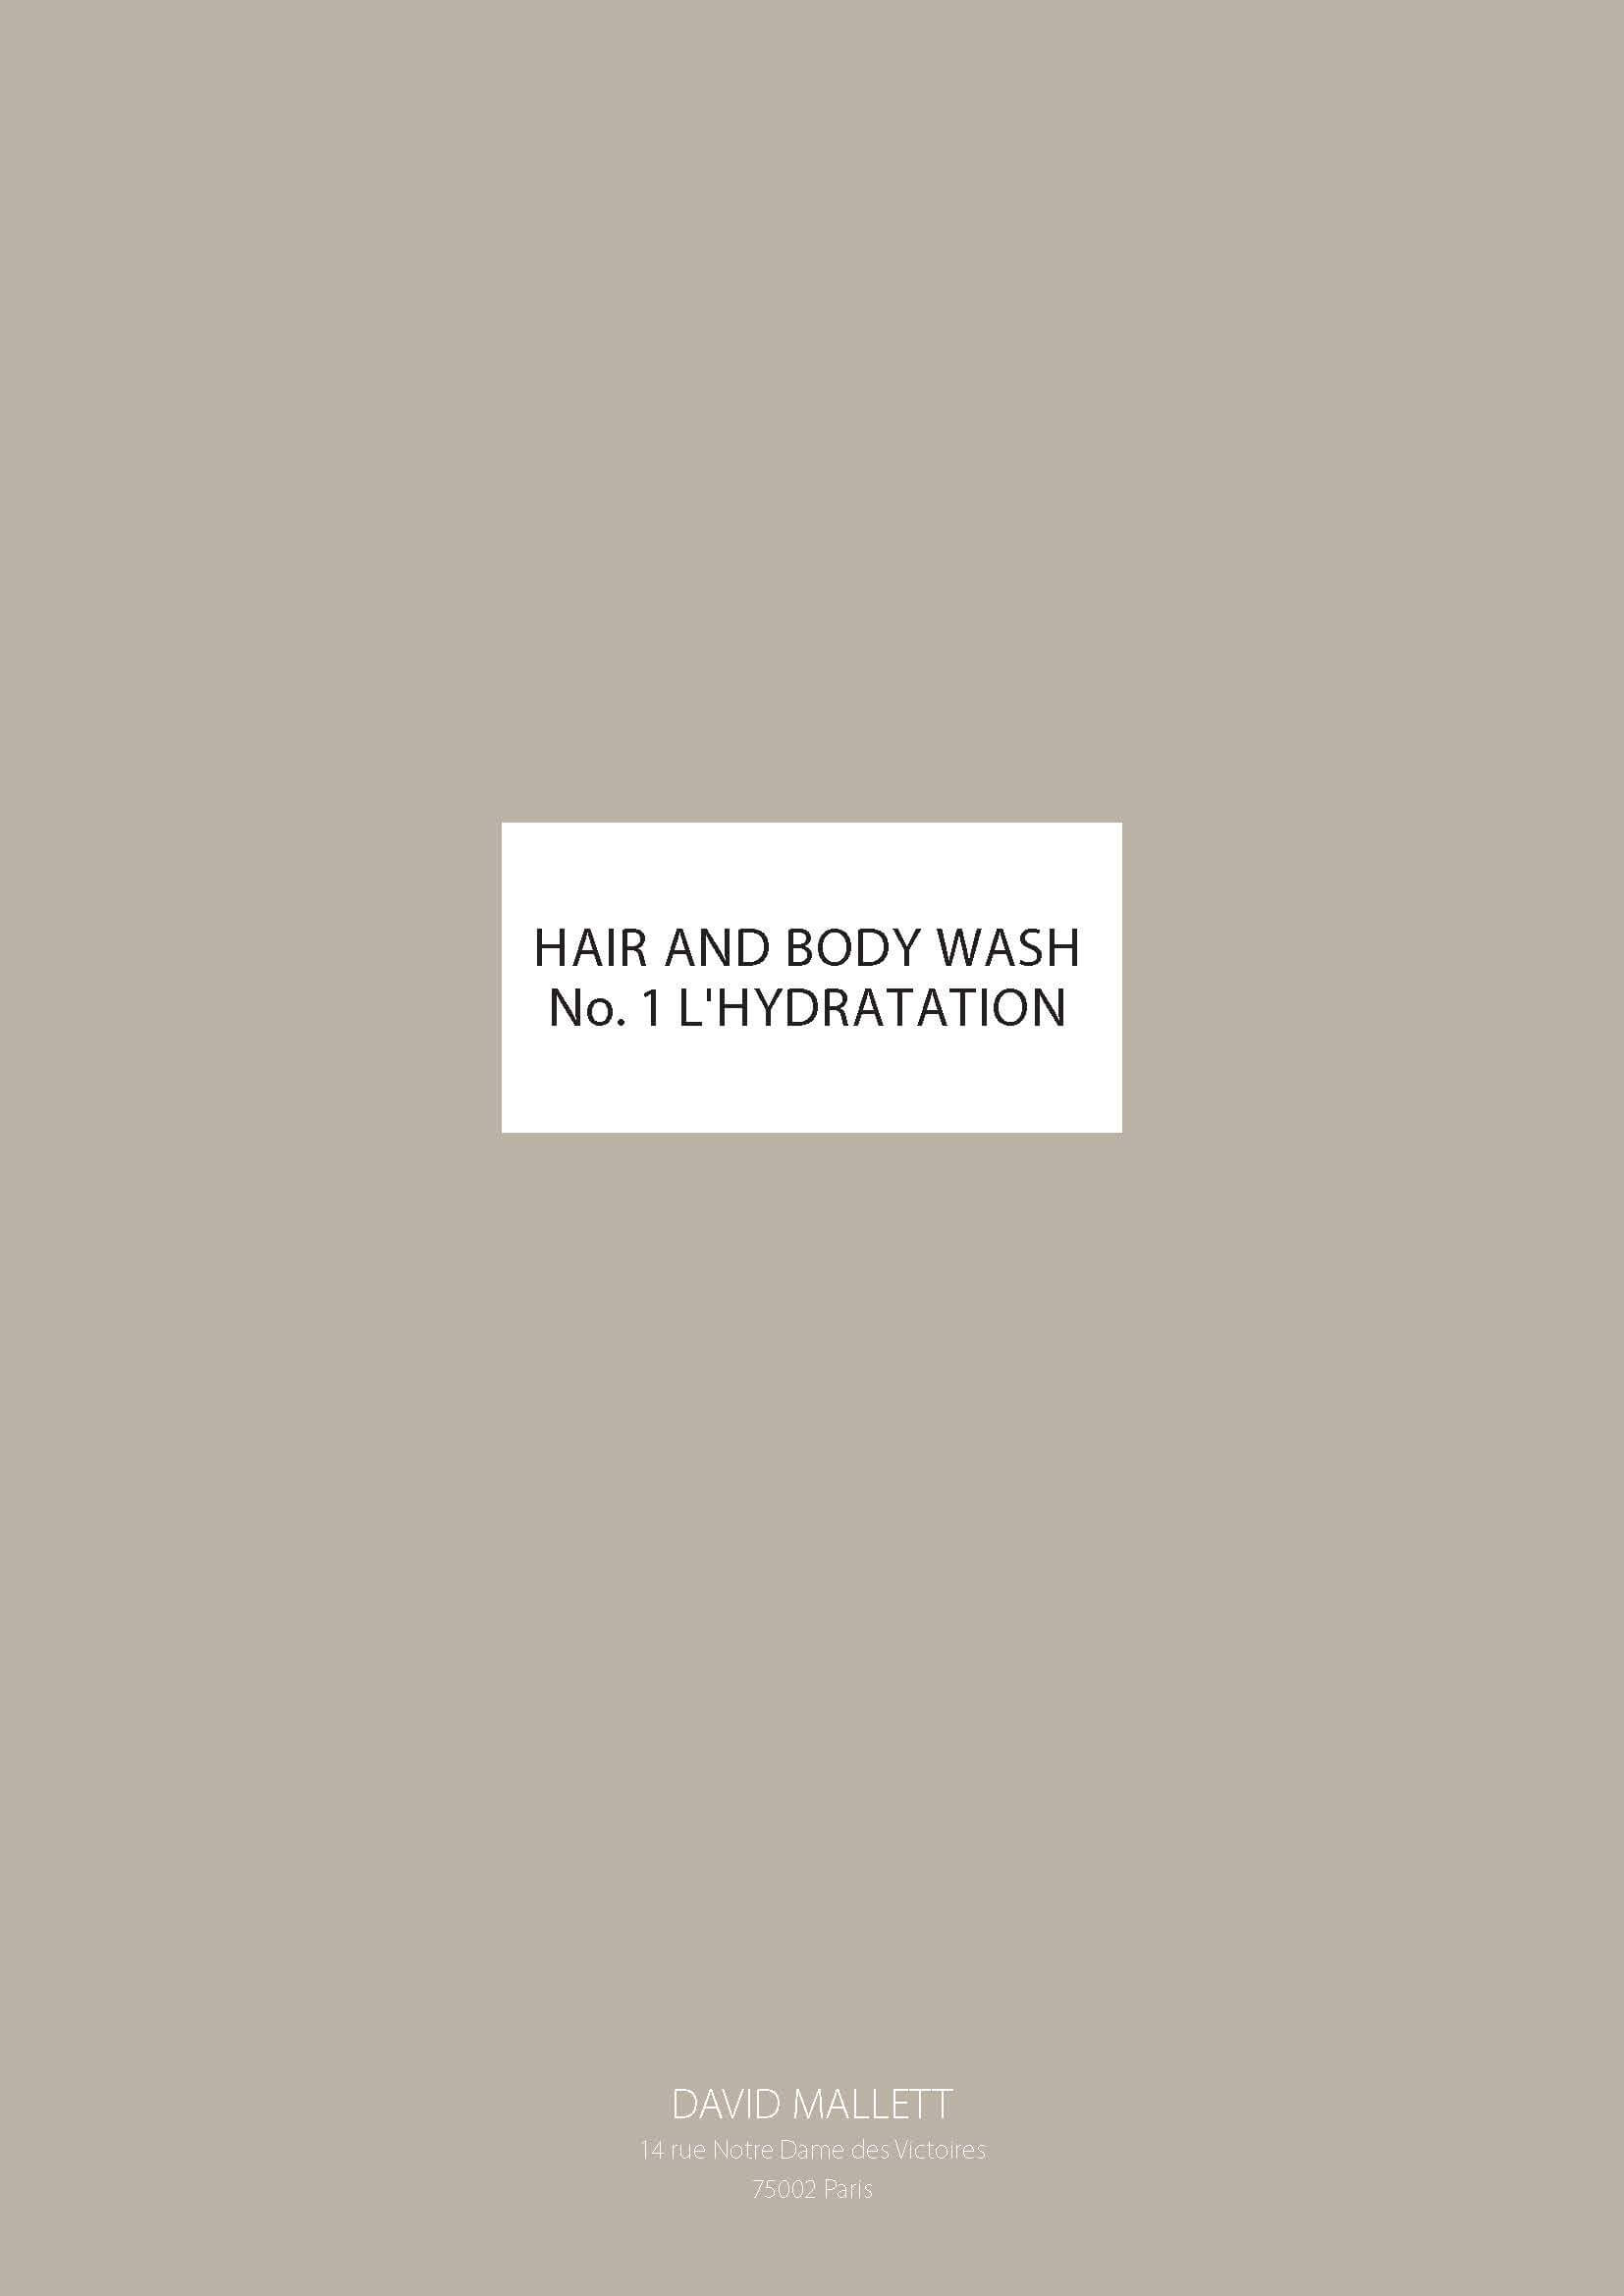 Hair And Body Wash FR